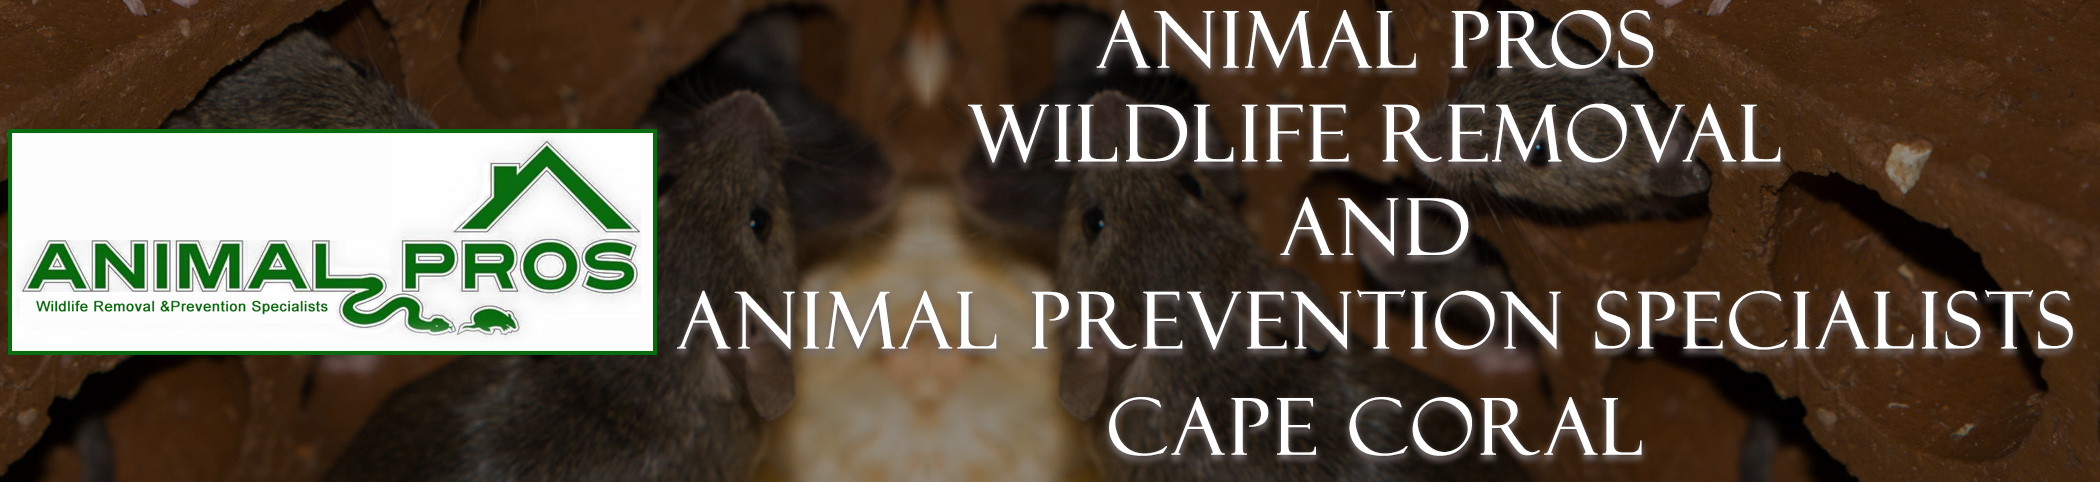 Animal Pros Cape Coral Florida Bat Removal And Wildlife Removal Header Image